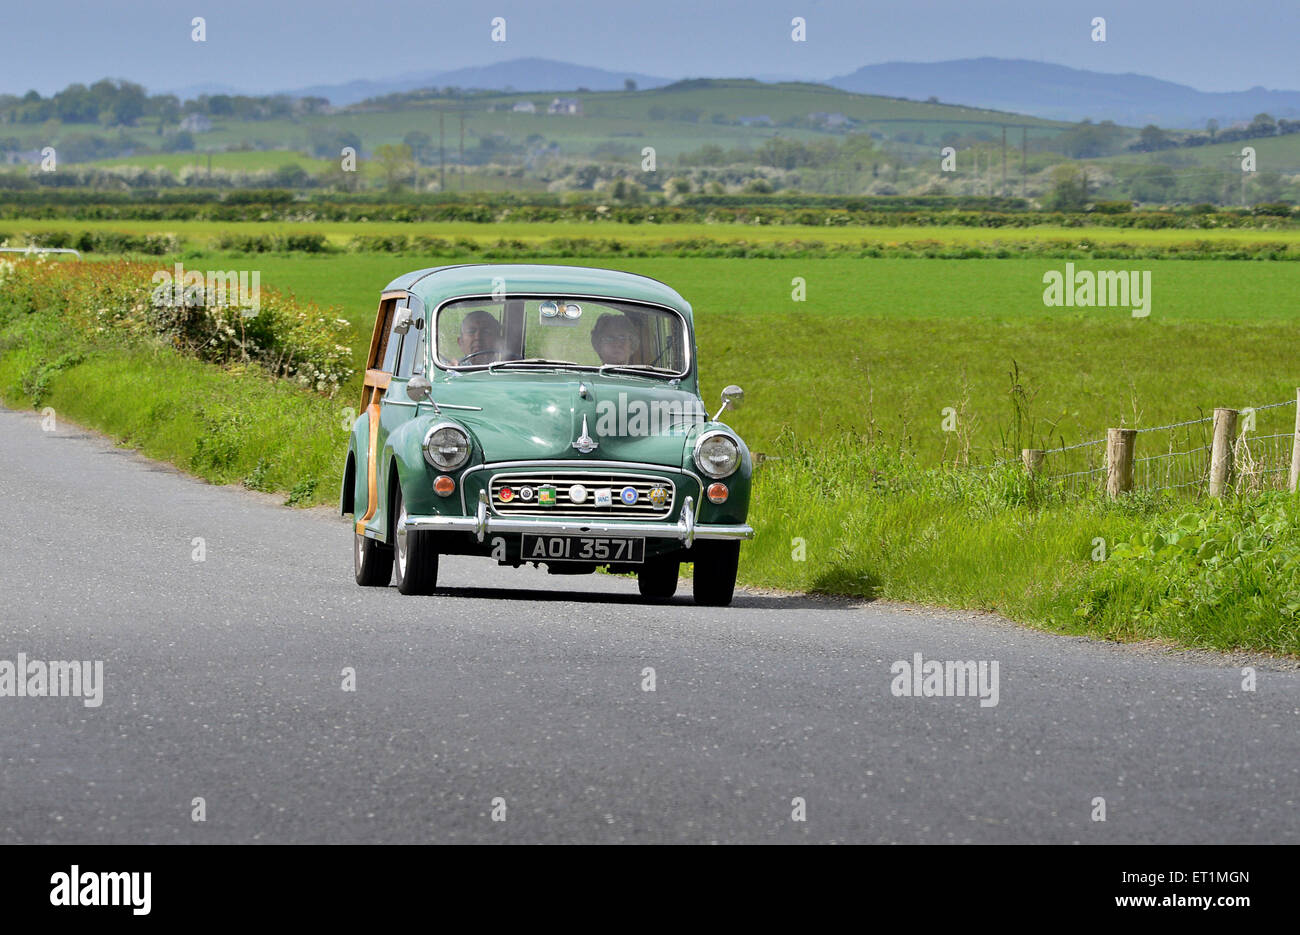 1967 Morris Minor Traveller on country road, Burnfoot, County Donegal, Ireland - Stock Image